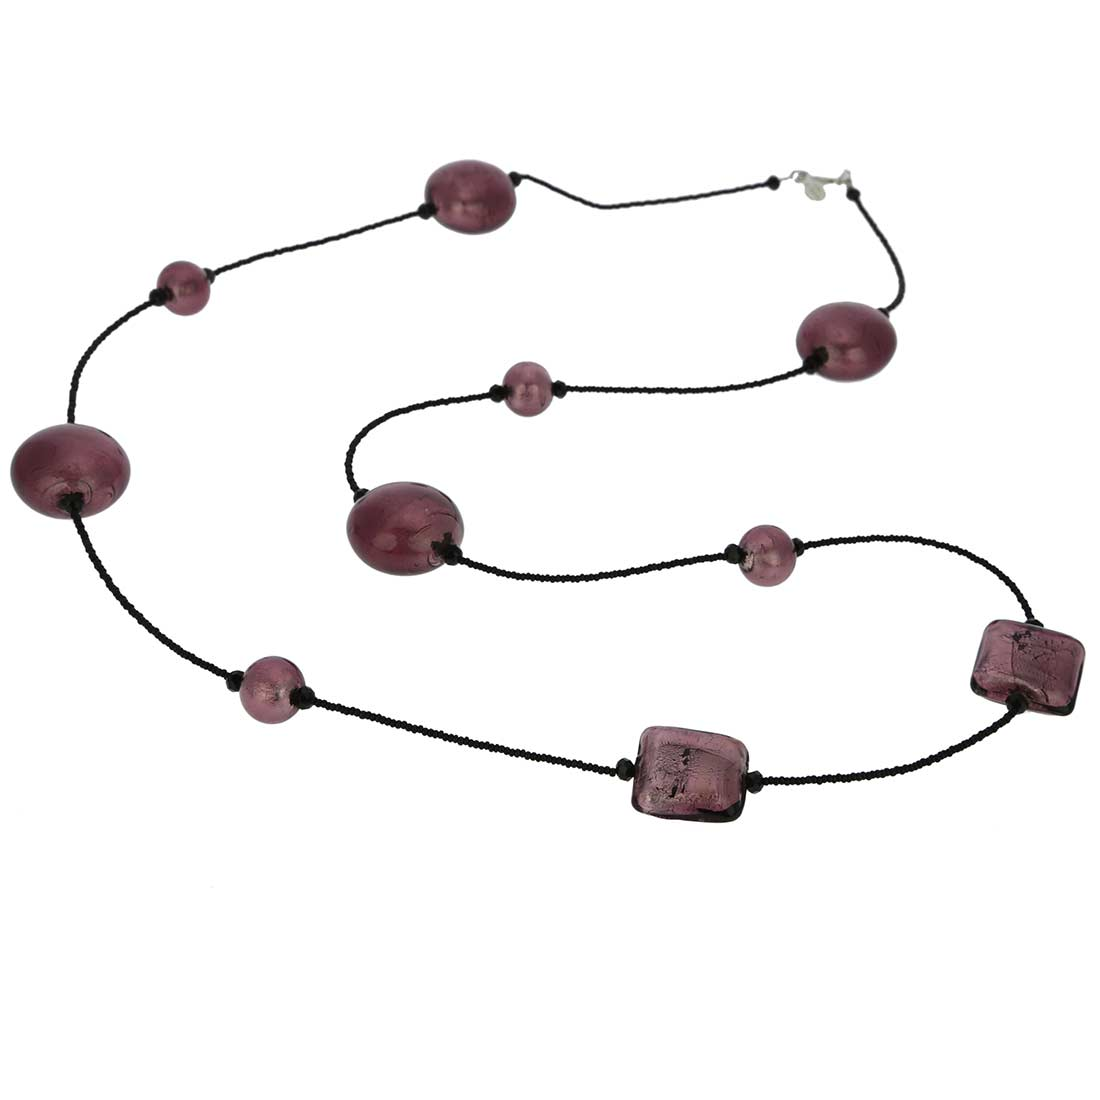 Lucia Murano Necklace - Amethyst